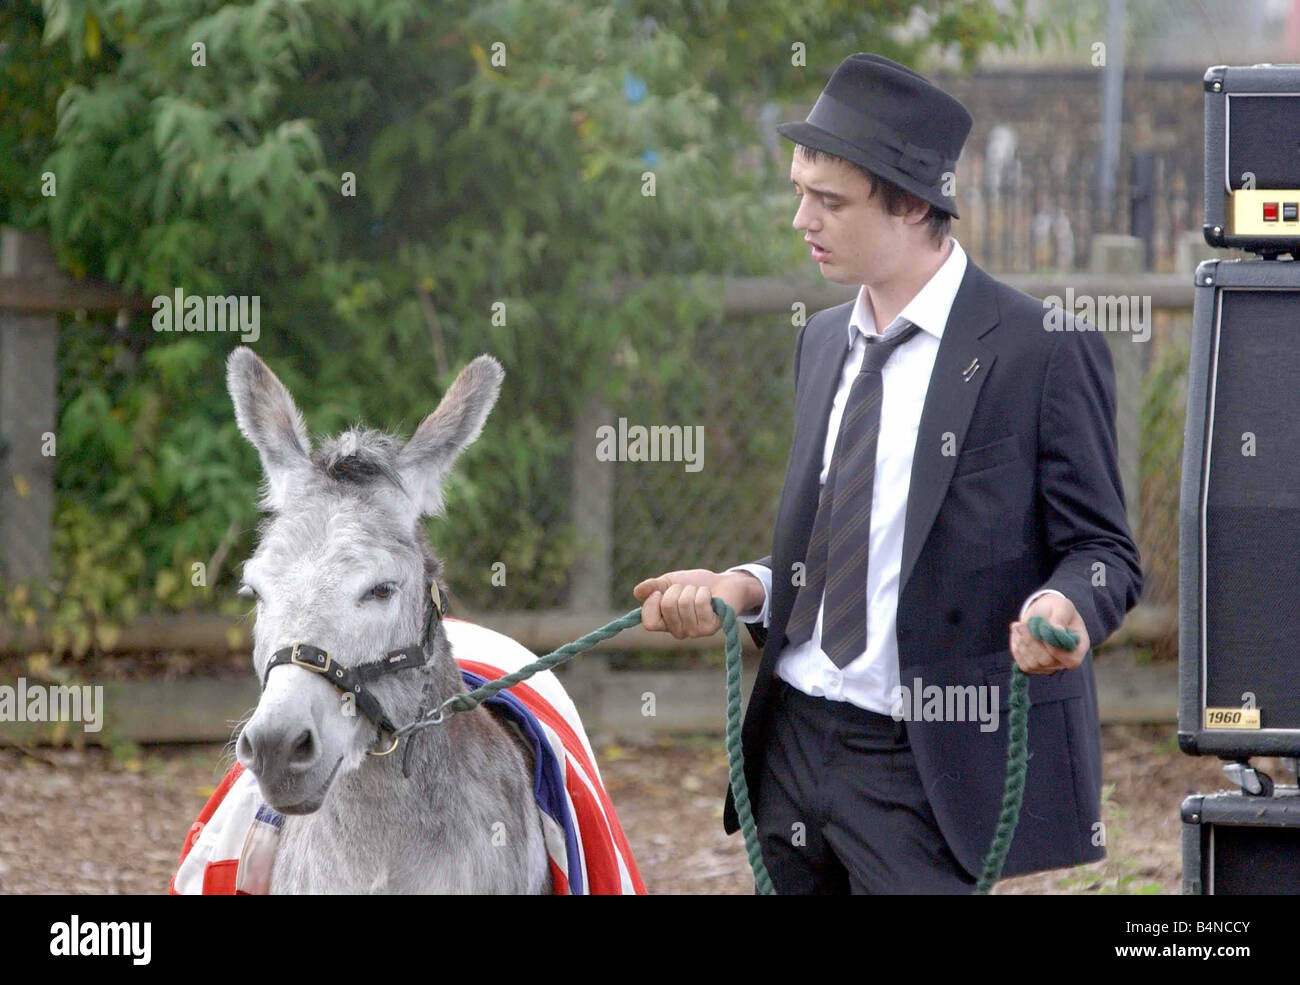 Pete Doherty records the video for a Babyshambles single filmed at Spitalfields Farm June 2005 - Stock Image